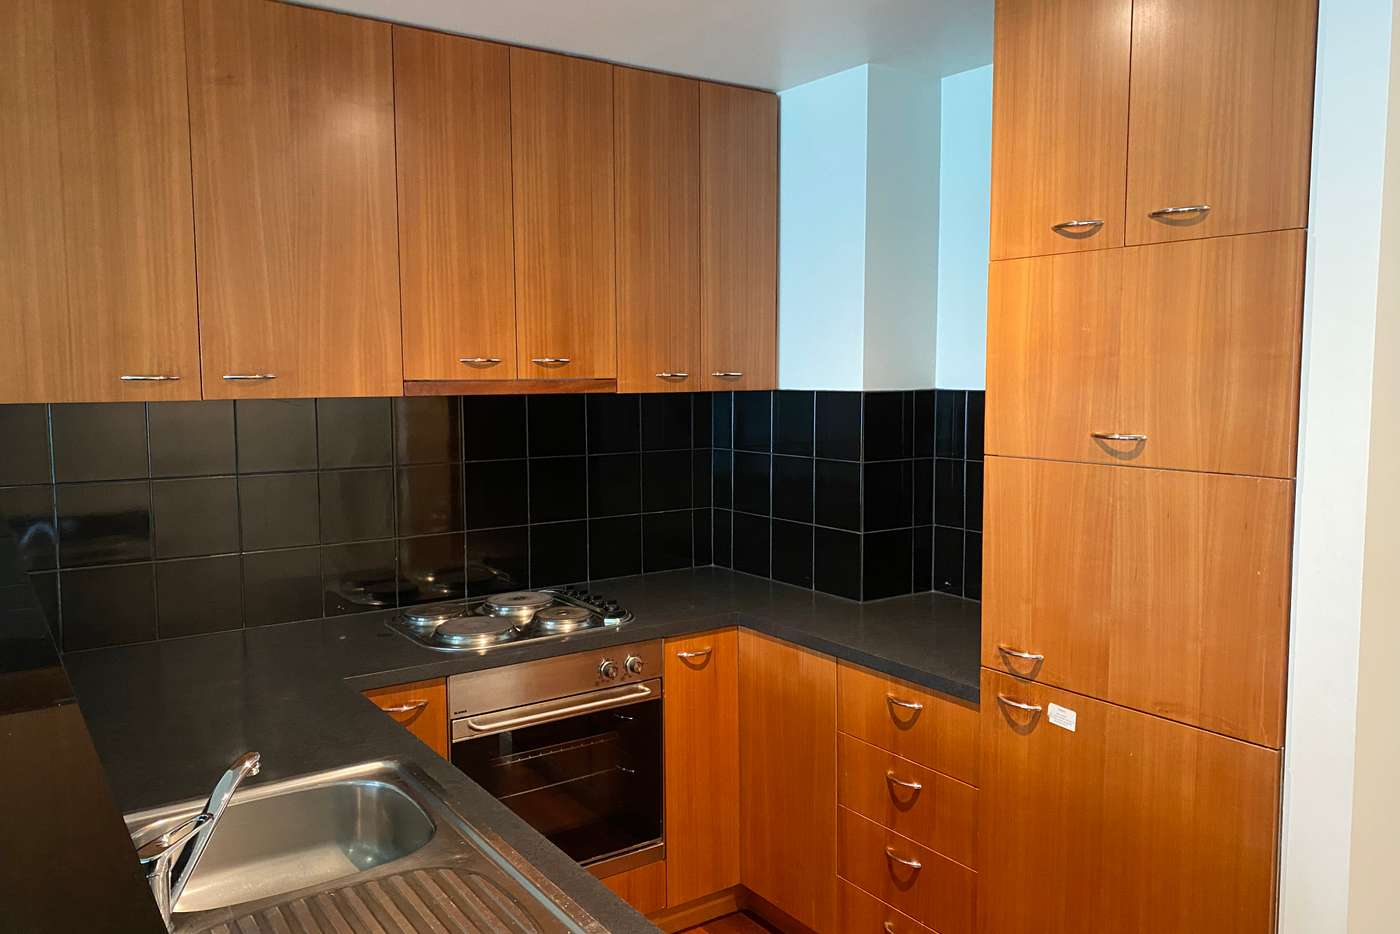 Main view of Homely apartment listing, 108/348 St Kilda Road, Melbourne VIC 3004